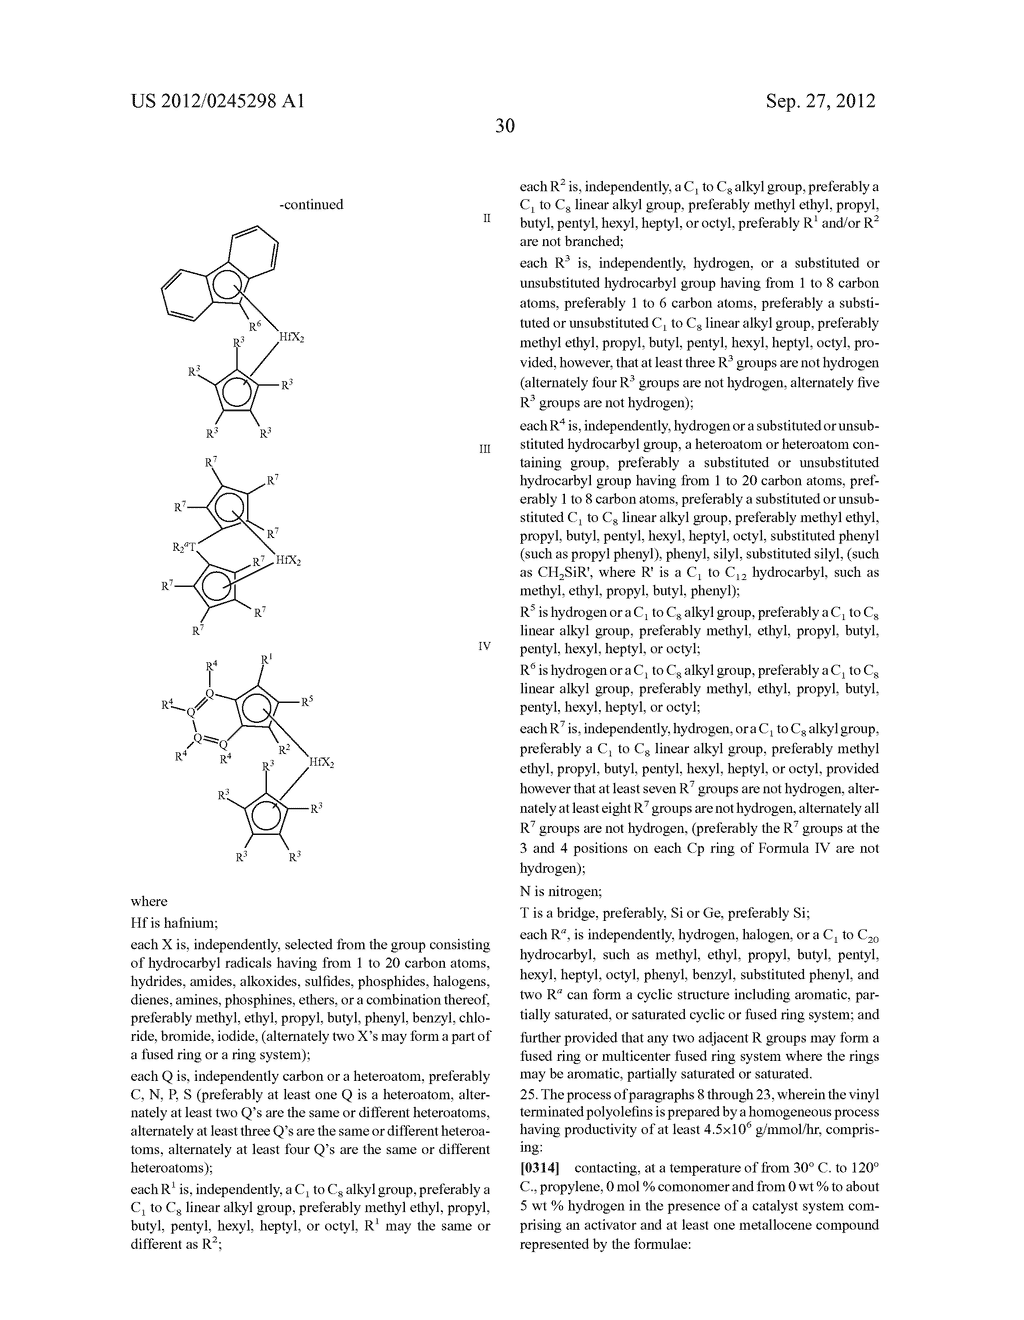 Amphiphilic Block Polymers Prepared by Alkene Metathesis - diagram, schematic, and image 31